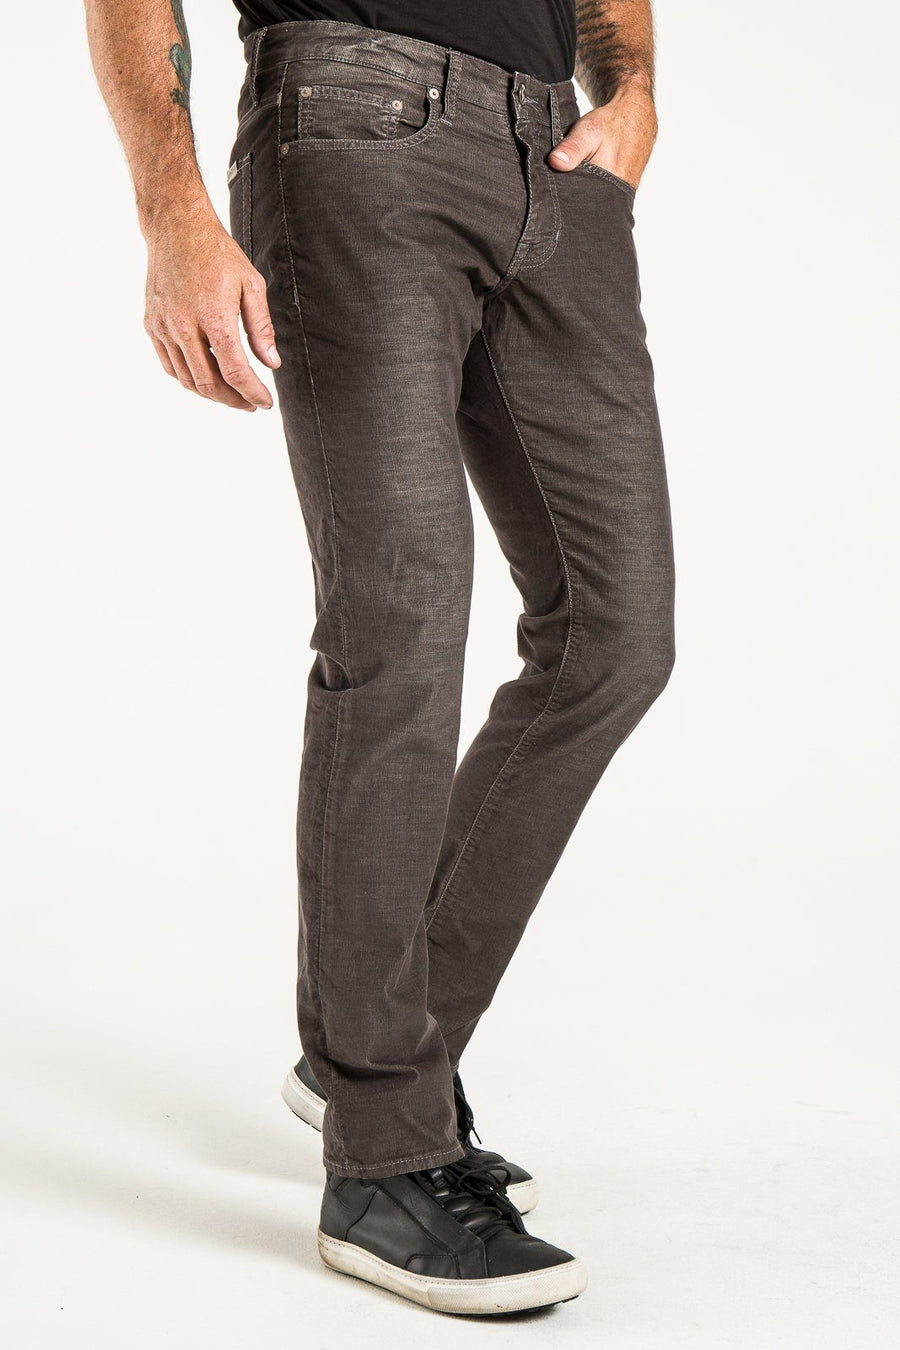 BARFLY SLIM IN GRAPHITE CORDUROY